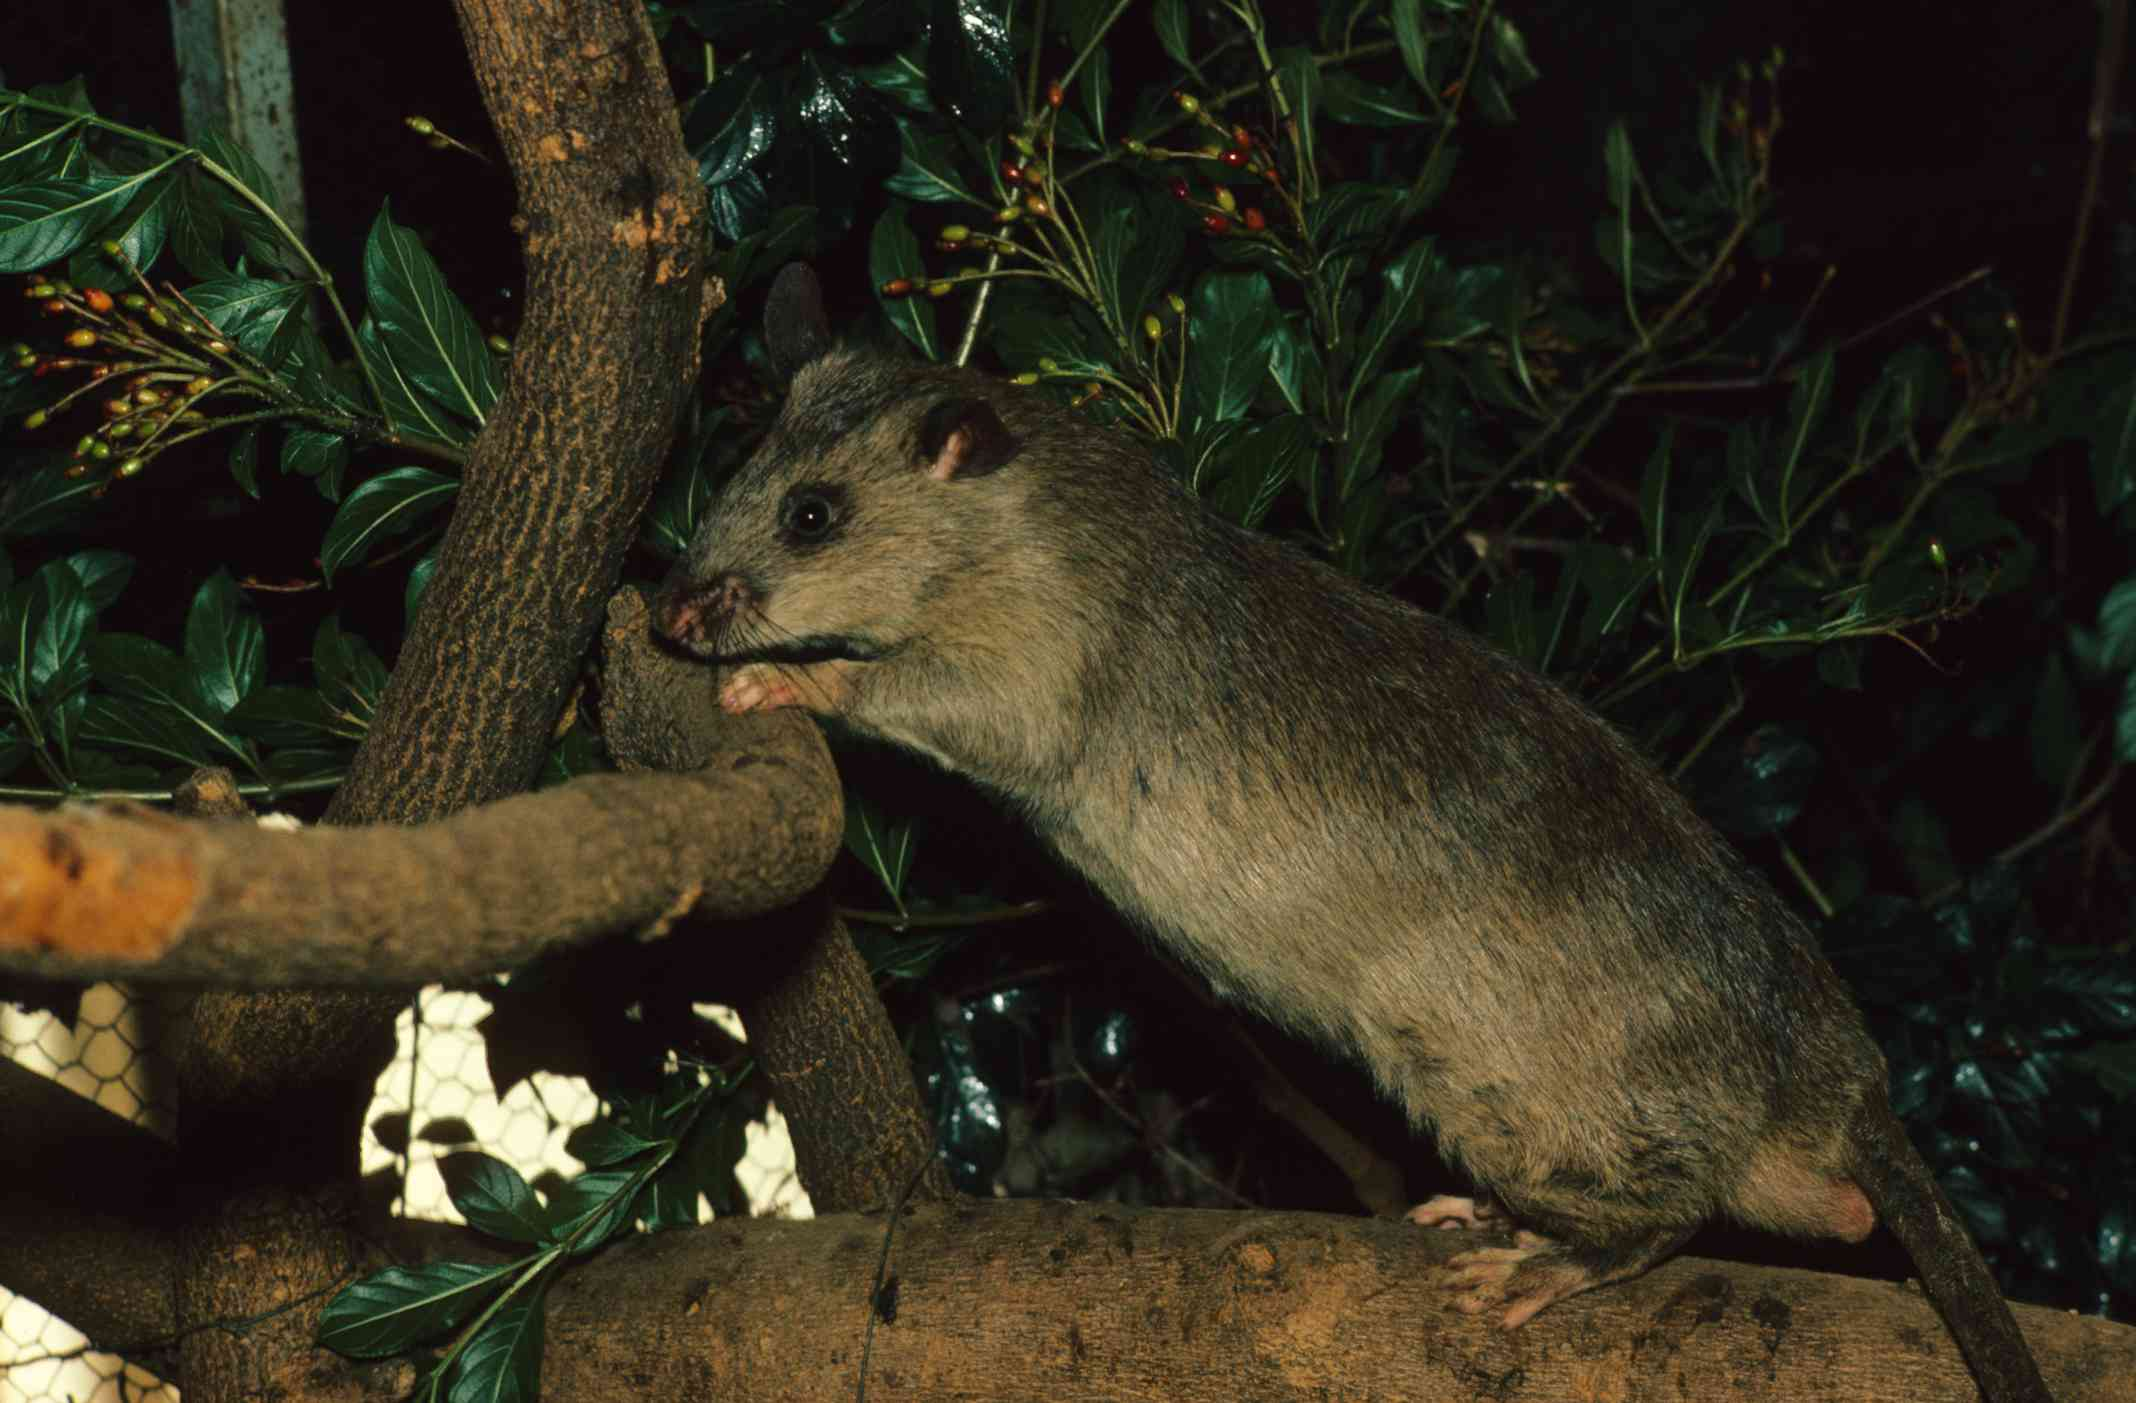 An outstretched African giant pouched rat perched on a tree branch surrounded by green leaves.